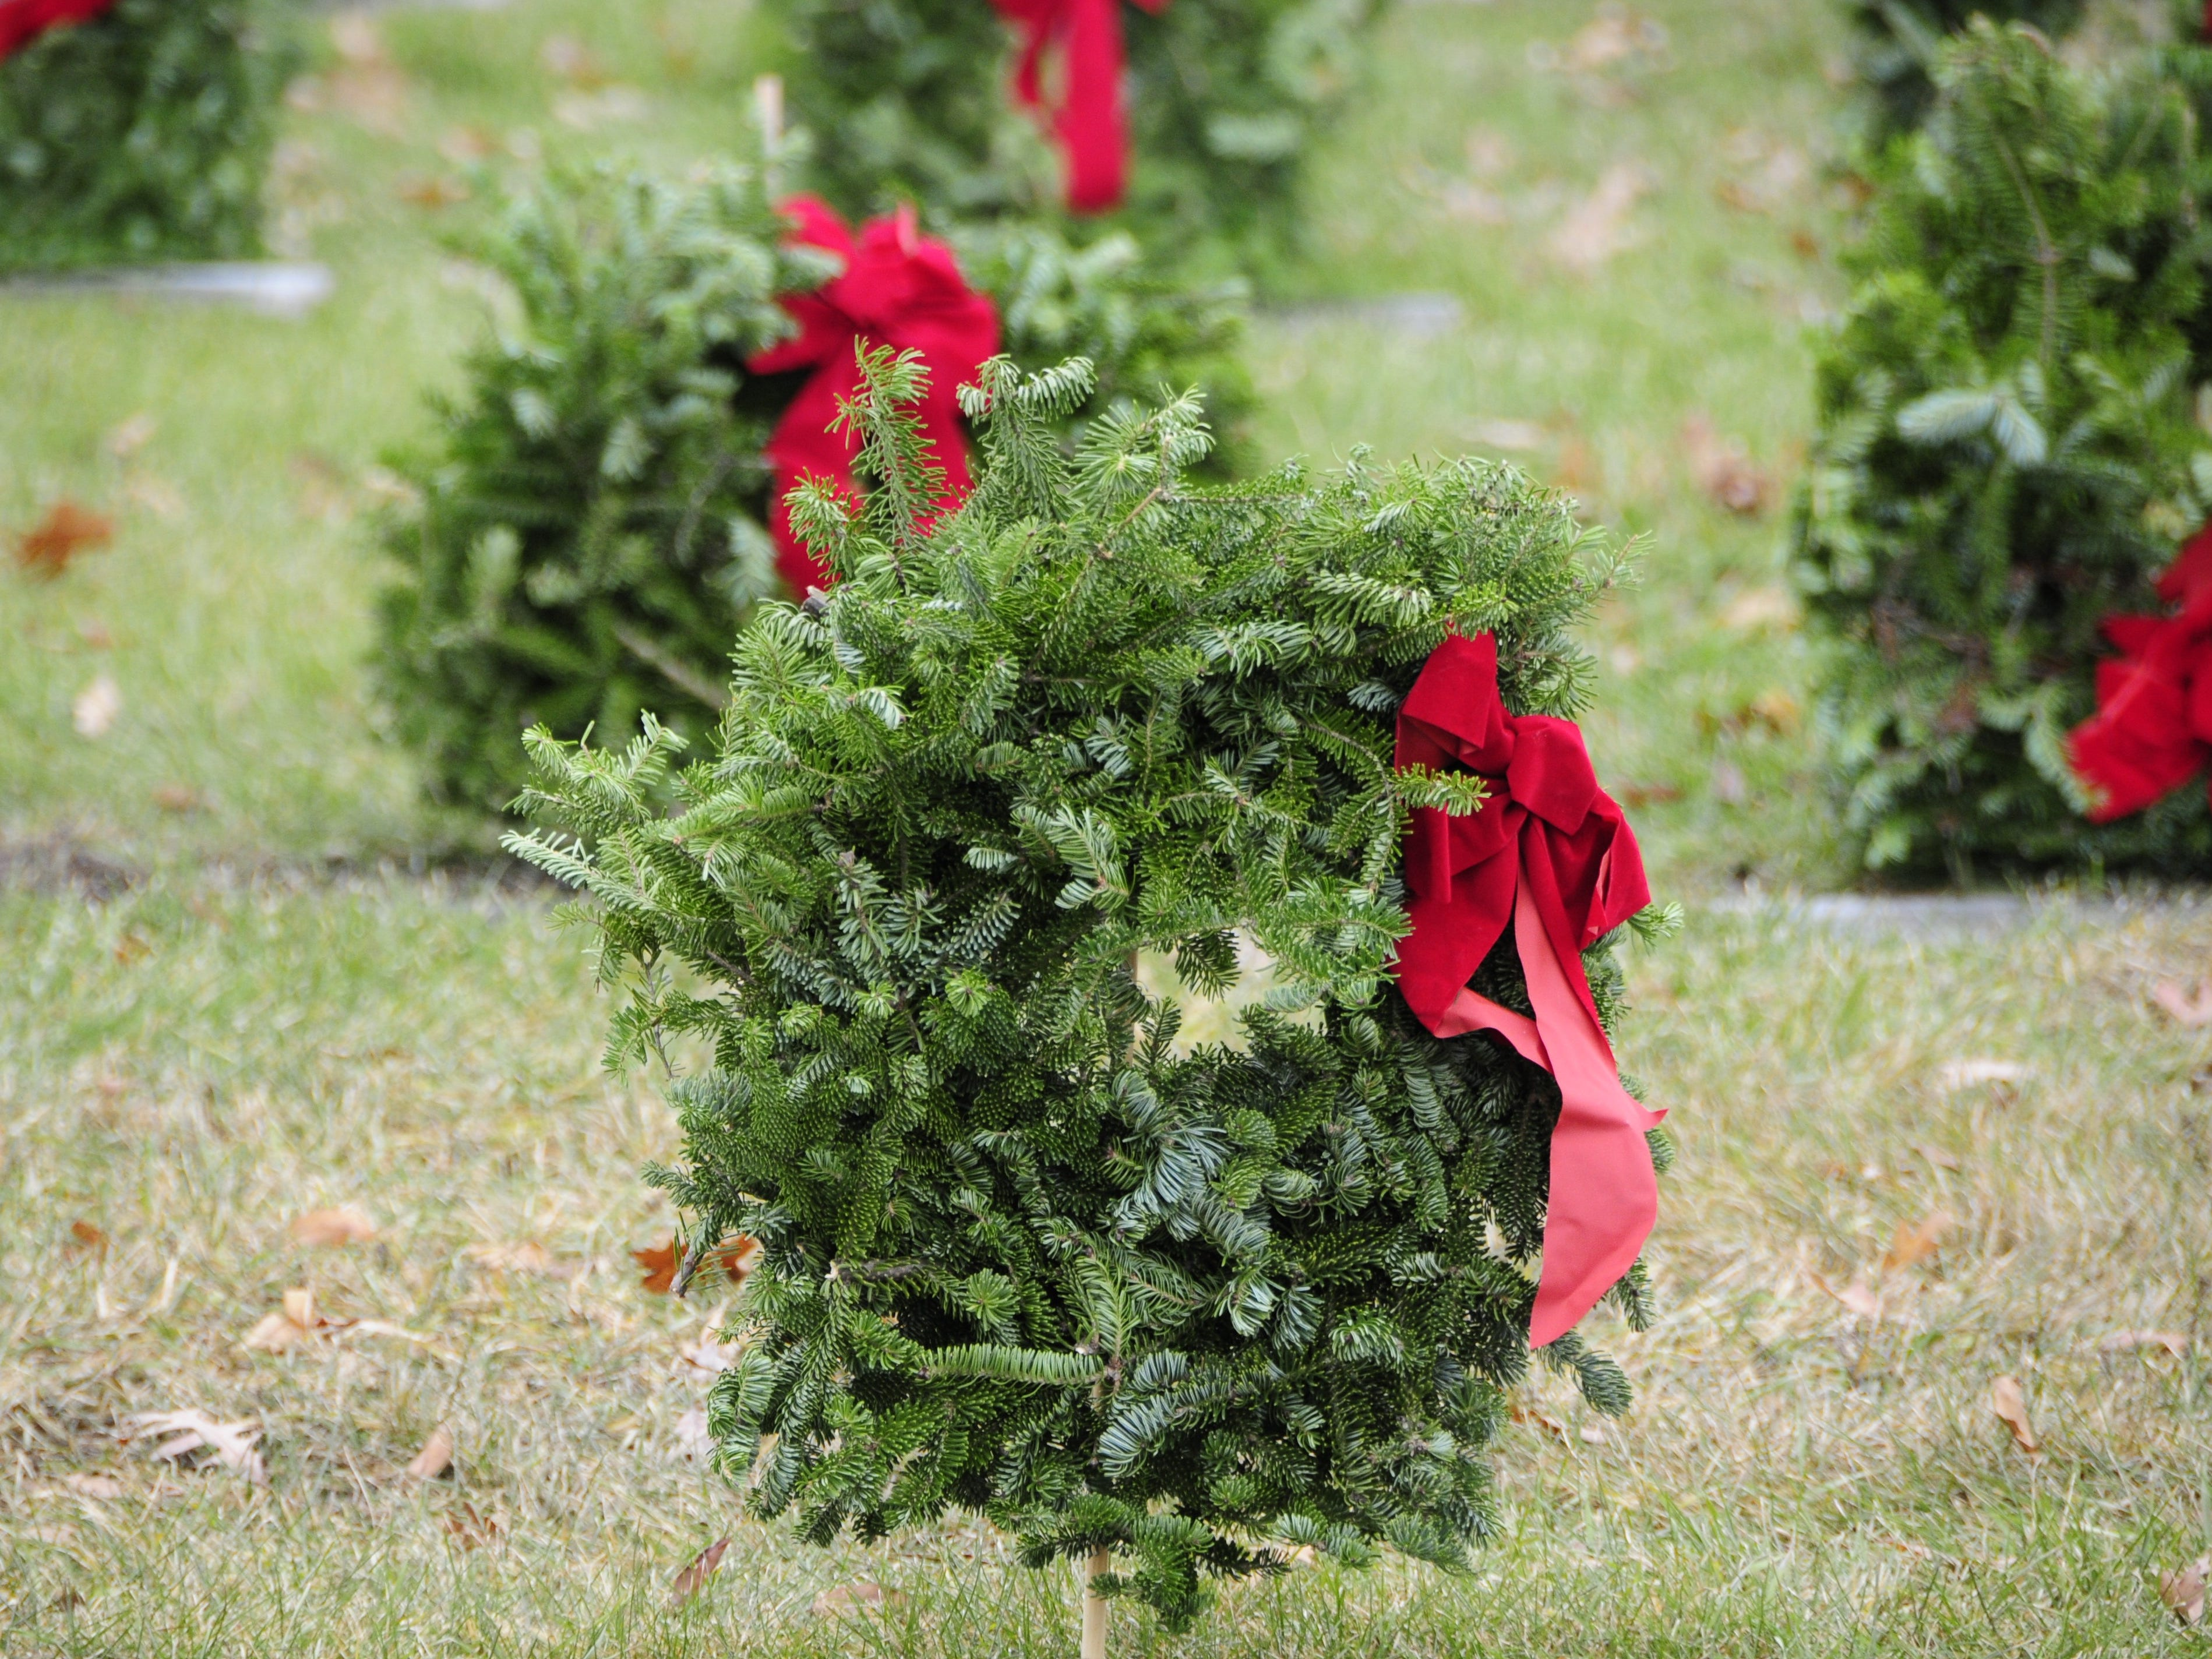 Rows of wreaths adorn graves at the Wreaths Across America event on Saturday, Dec. 15, 2018 at the St. Clair County Allied Veterans Cemetery.